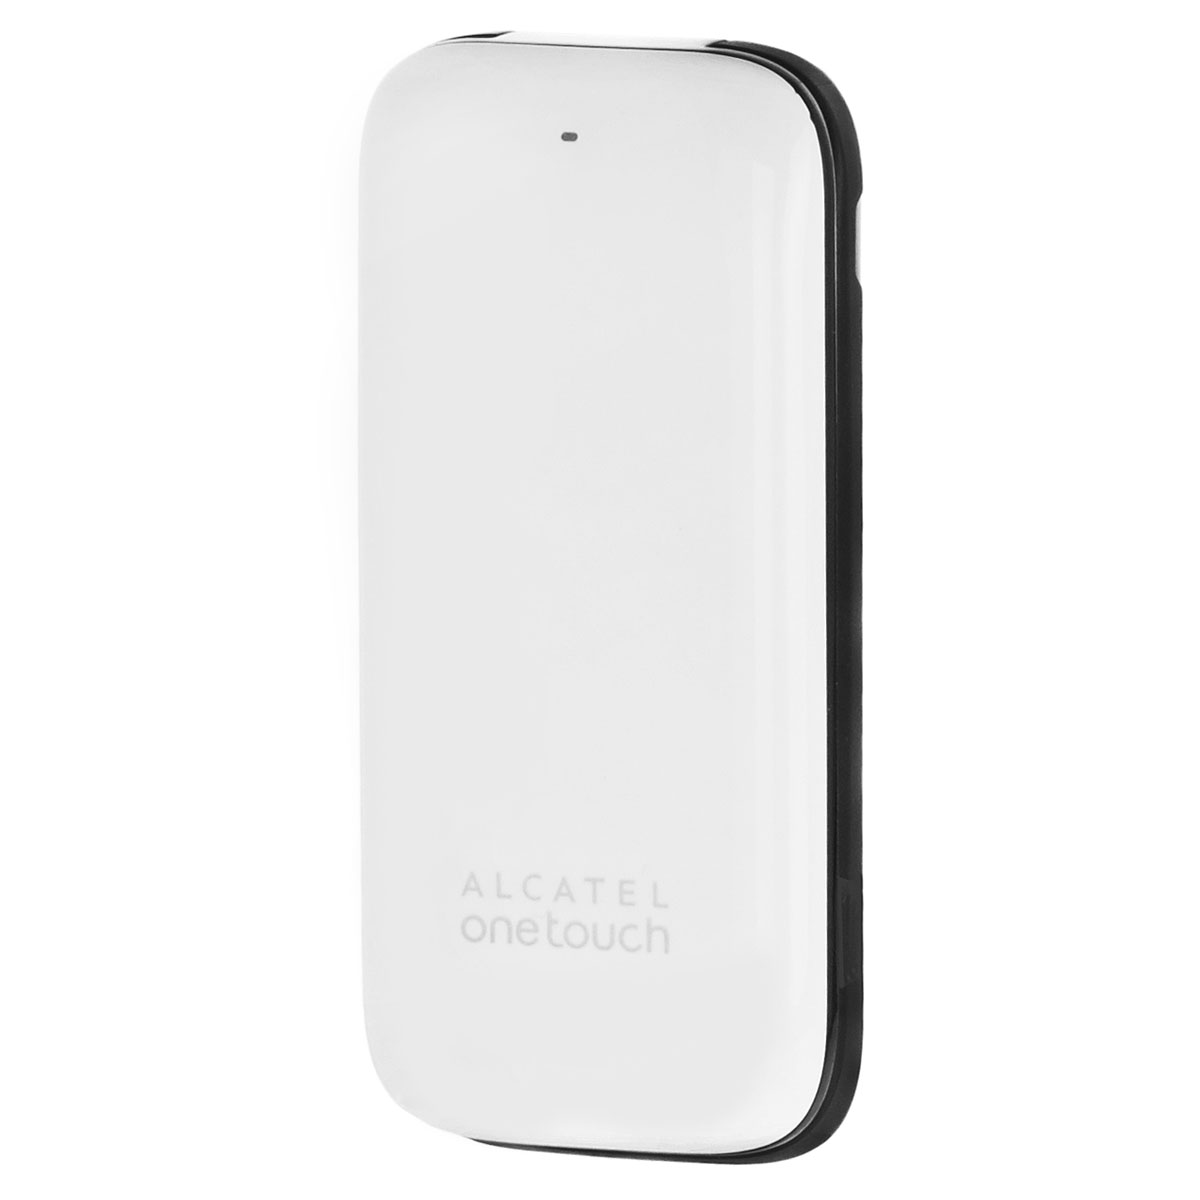 Alcatel OT-1035D Dual Sim, Pure White кнопочный телефон alcatel 2051d pure white